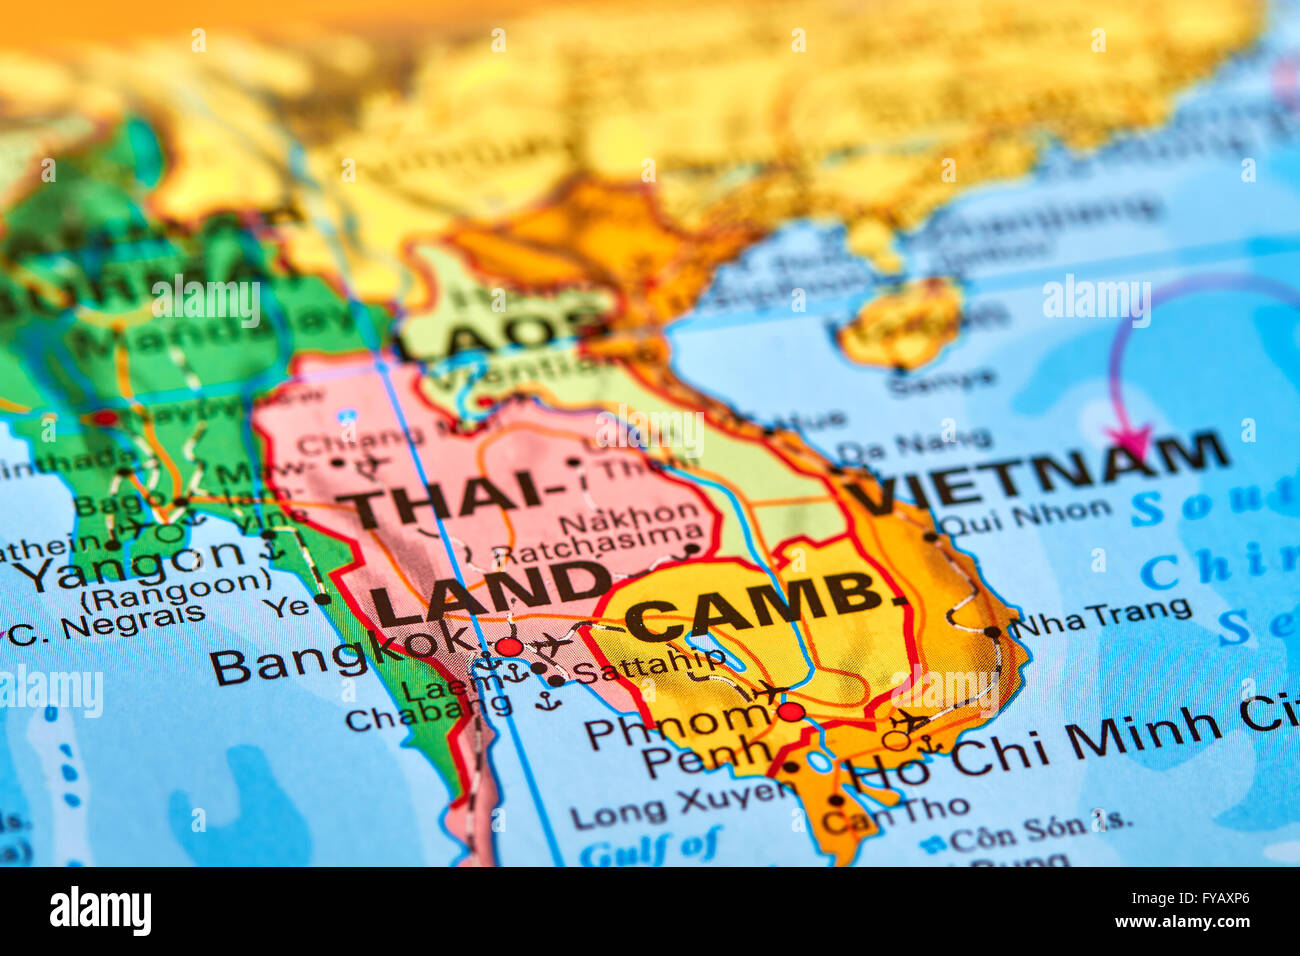 Bangkok, Capital City of Thailand on the World Map Stock Photo ...